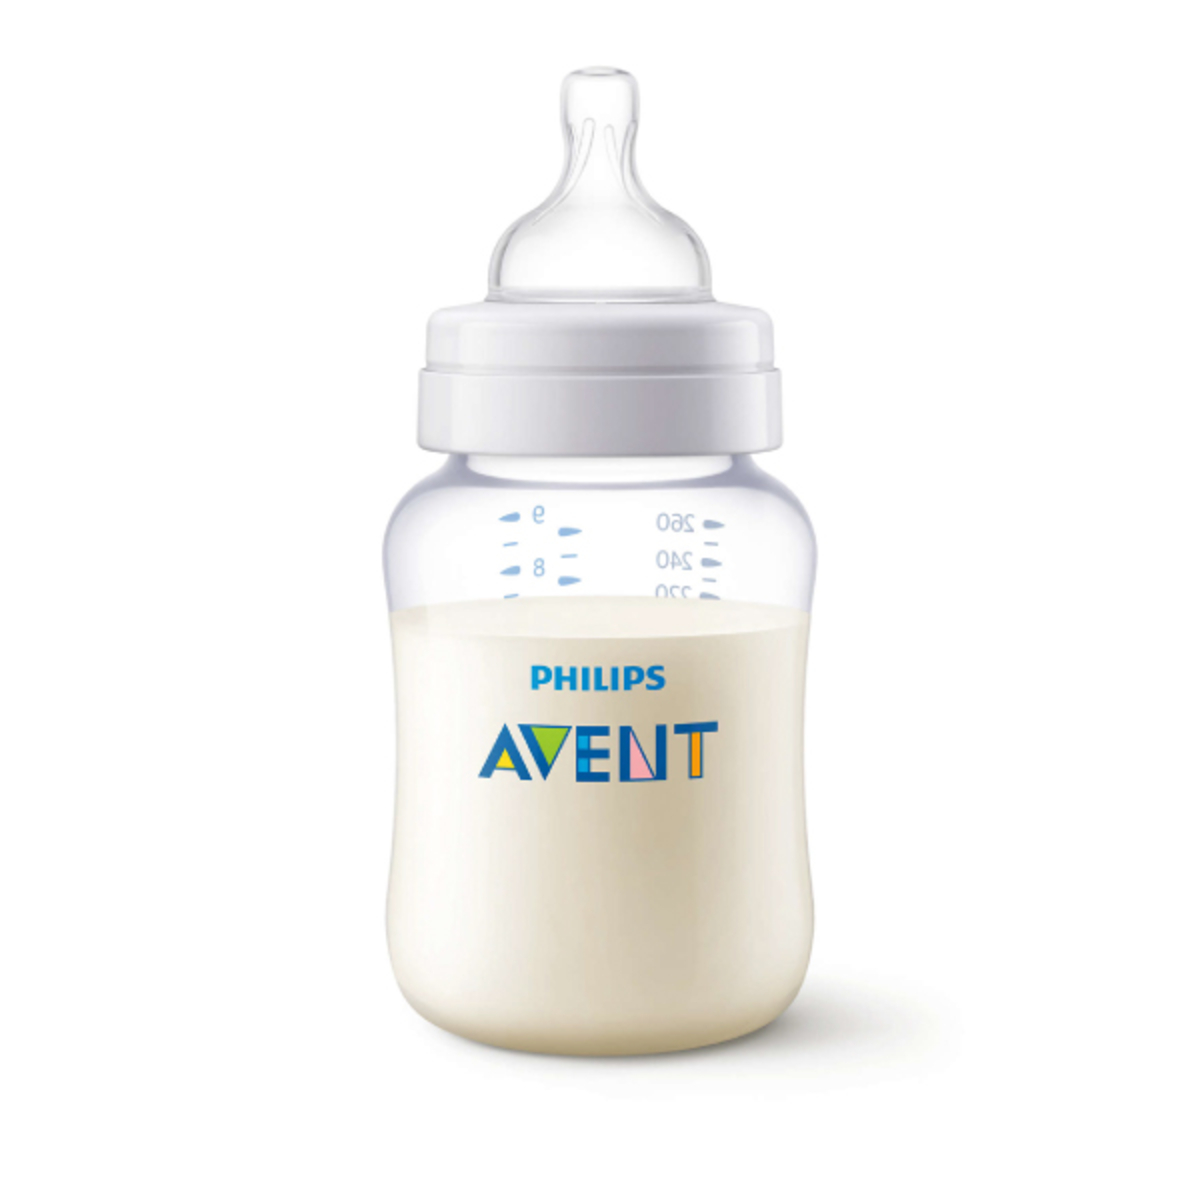 Philips Avent PA Classic + Feeding Bottle 260ml | Go Shop